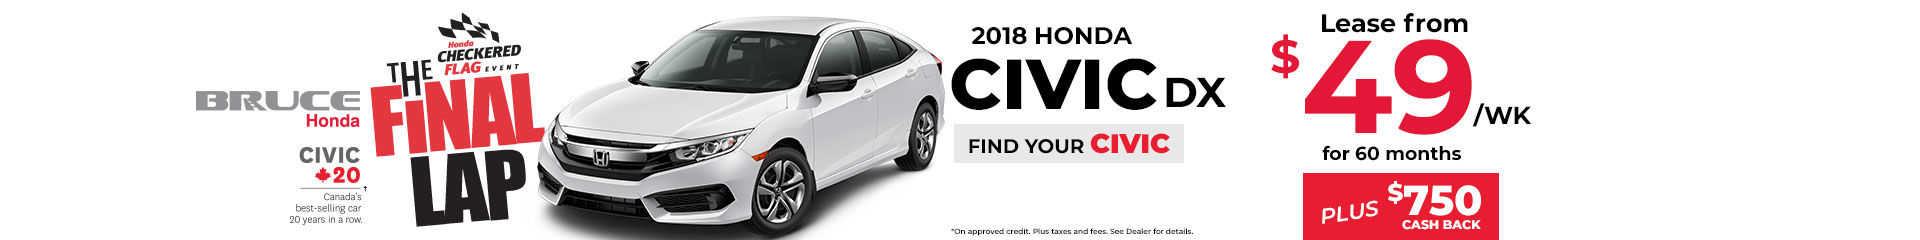 Lease the 2018 Honda Civic DX